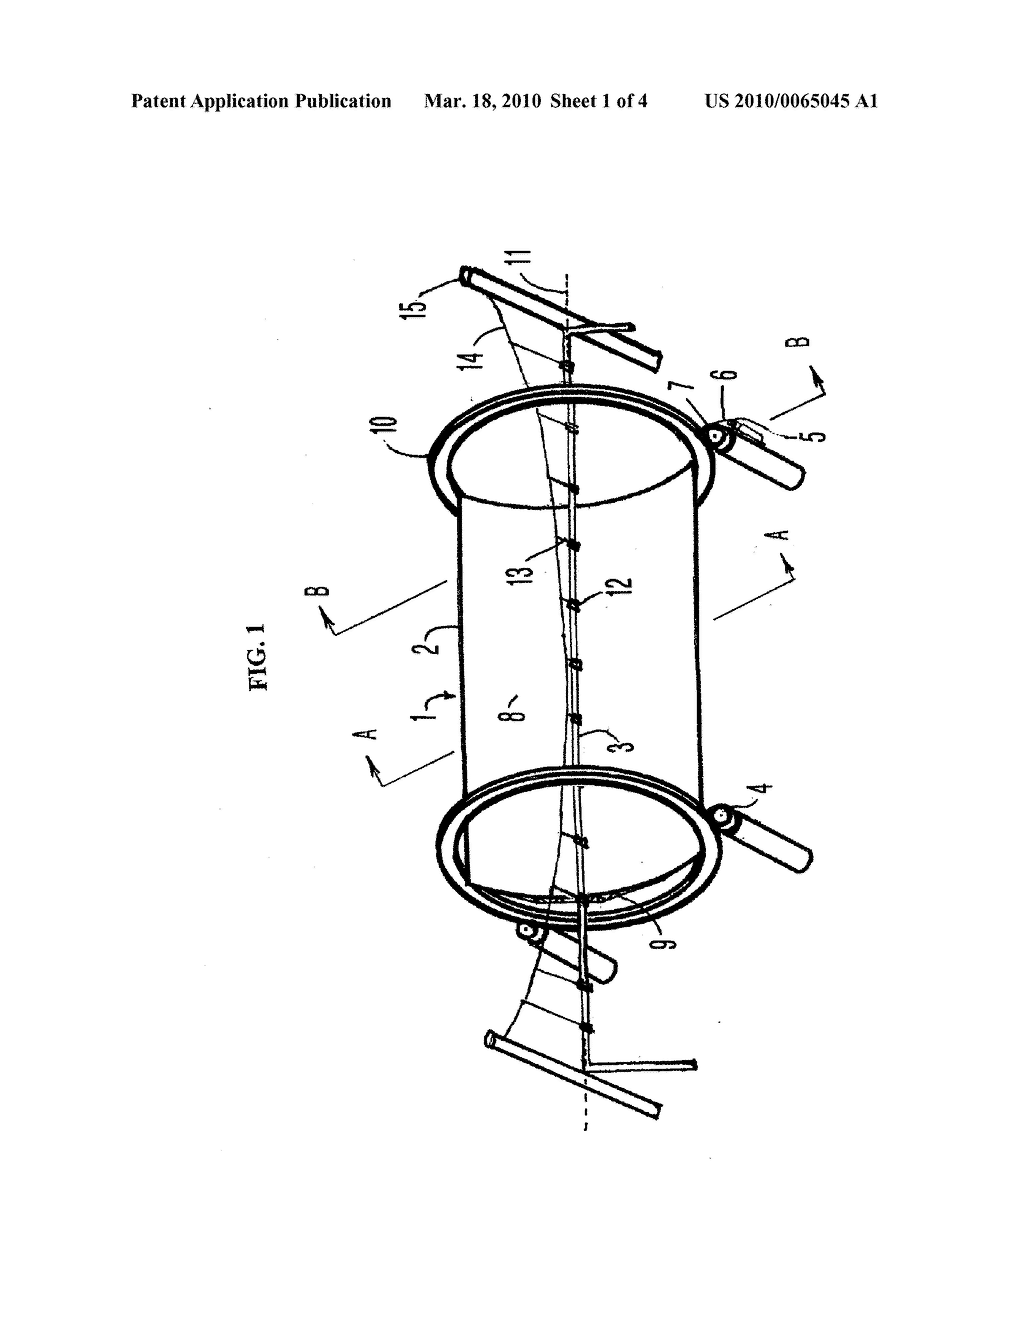 Parabolic Trough Solar Reflector With An Independently Supported Collector Tube - diagram, schematic, and image 02